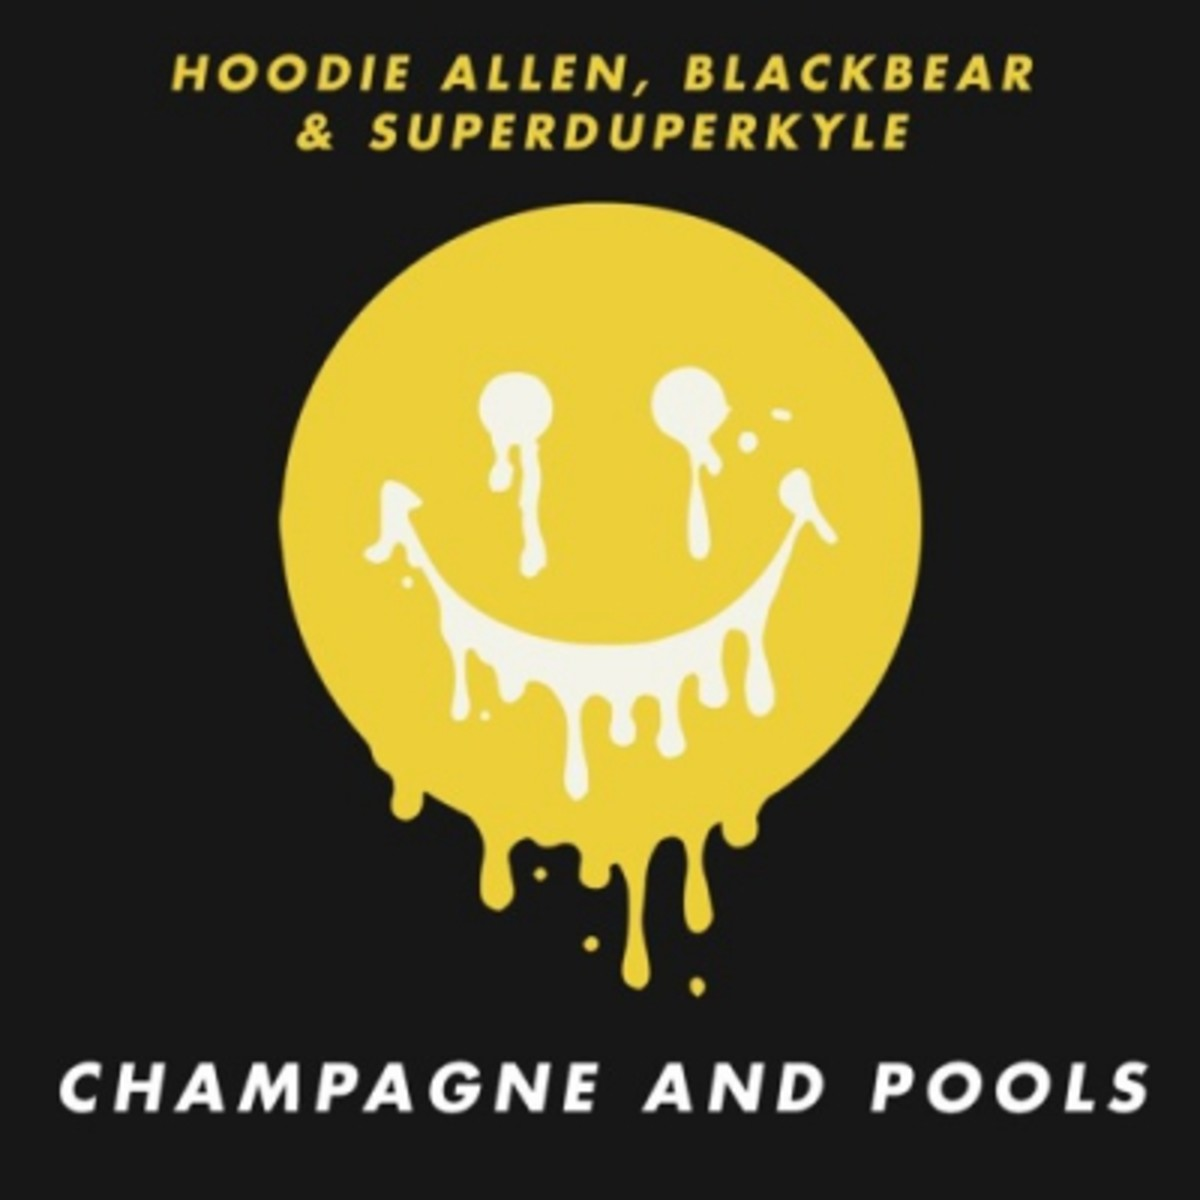 hoodie-allen-champagne-and-pools.jpg